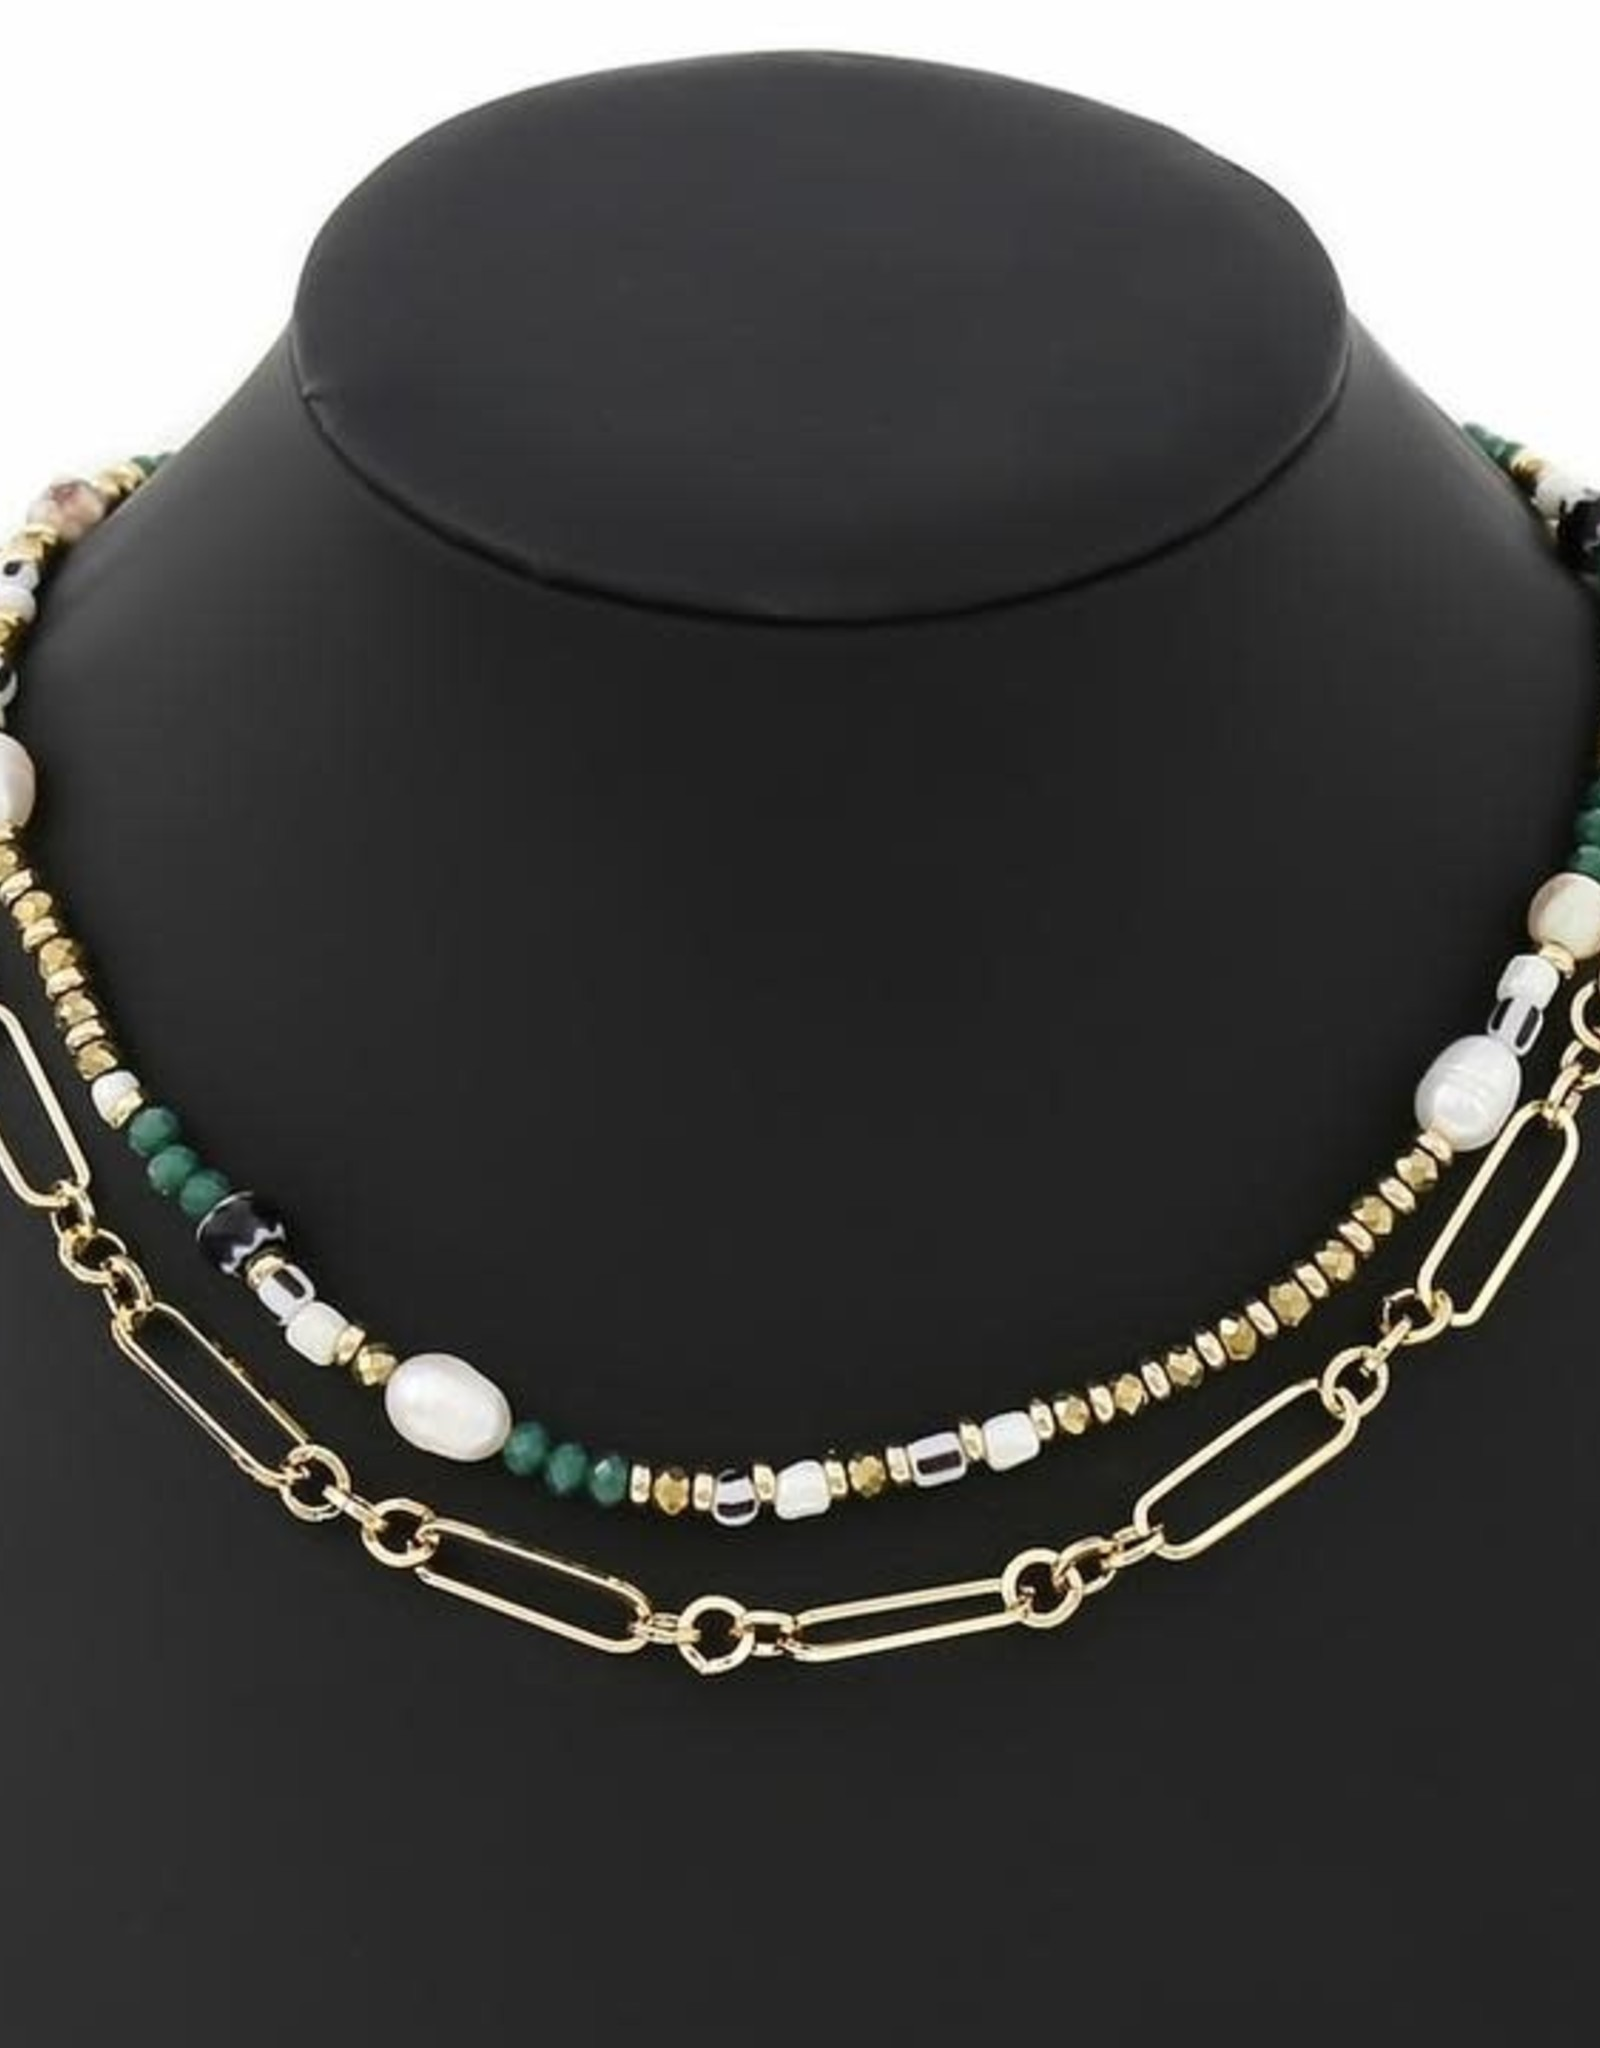 Fresh Water Pearl/Natural Stone/Glass Bead Layered Chain Necklace